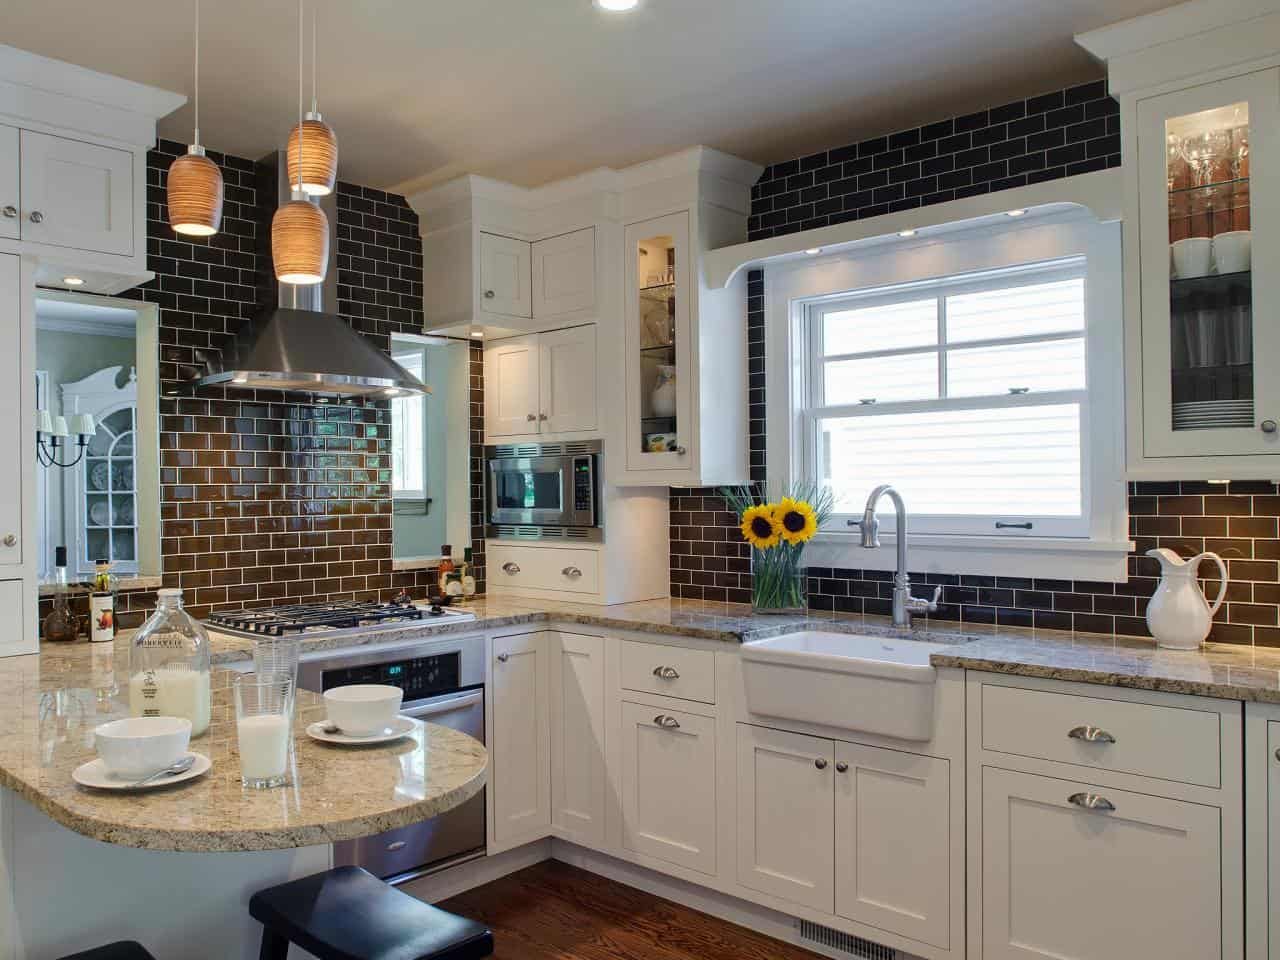 11 kitchen backsplash ideas you should consider dailygadgetfo Choice Image